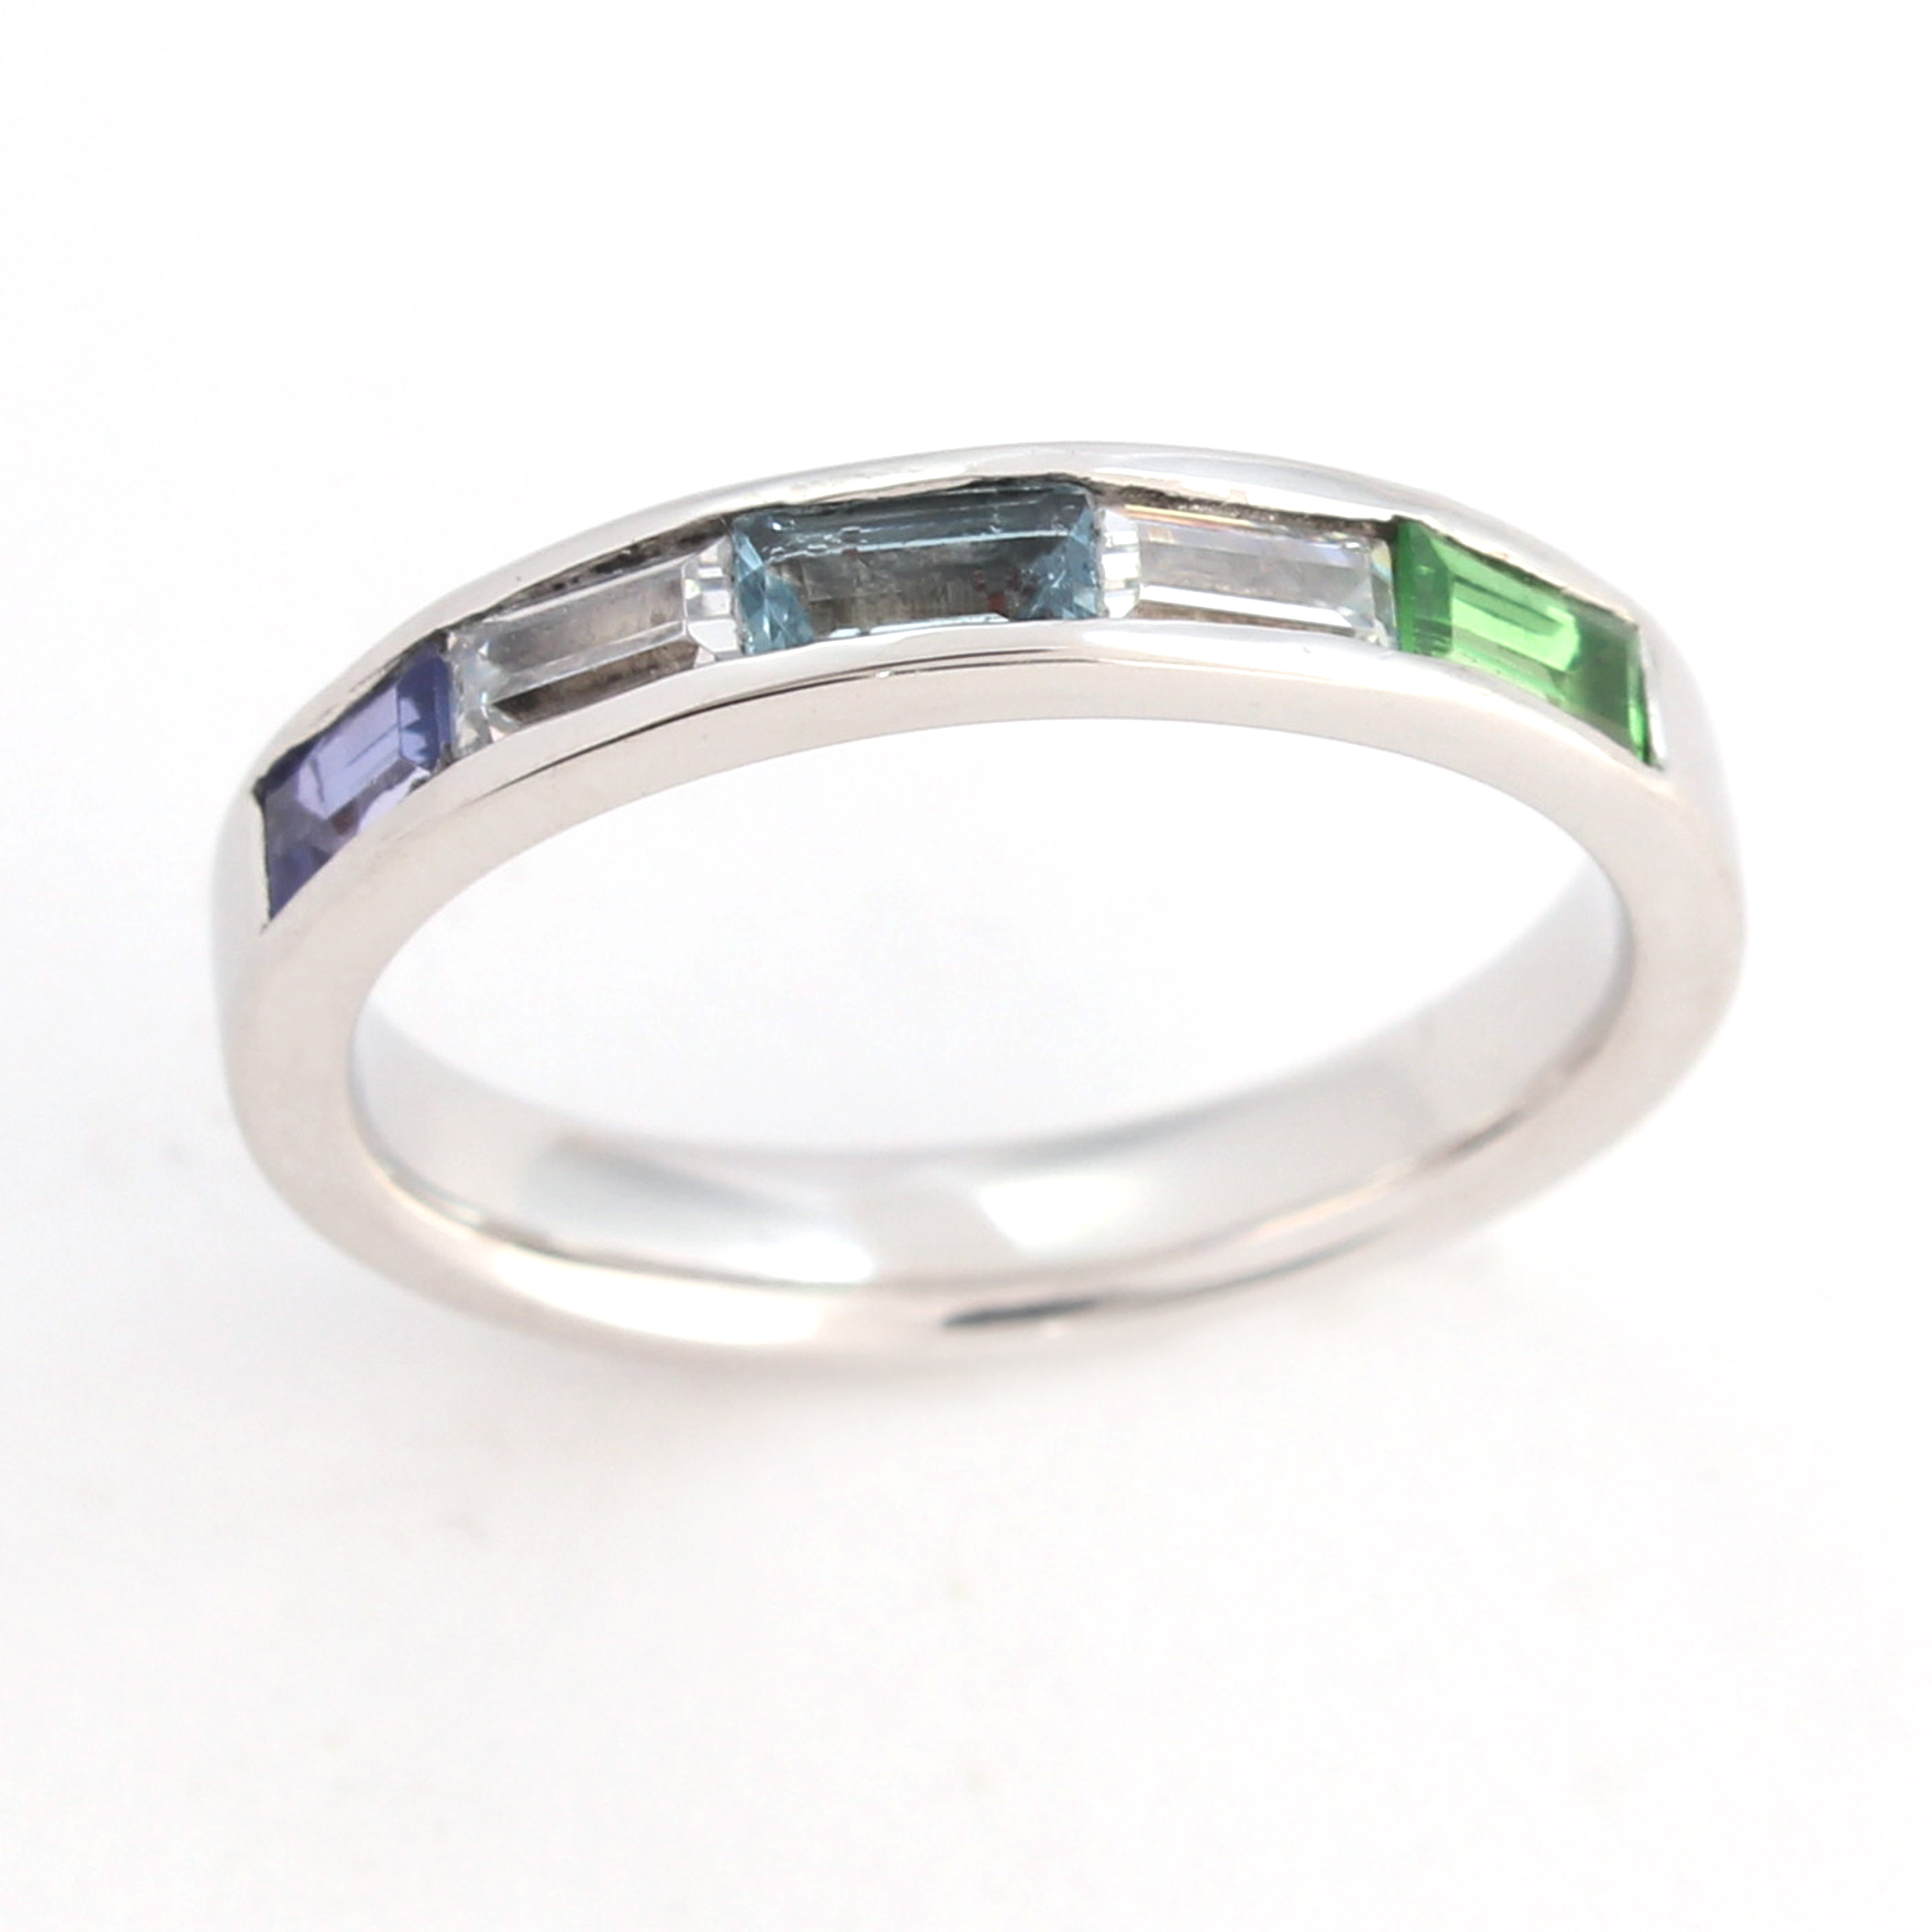 Birthstone wedding ring